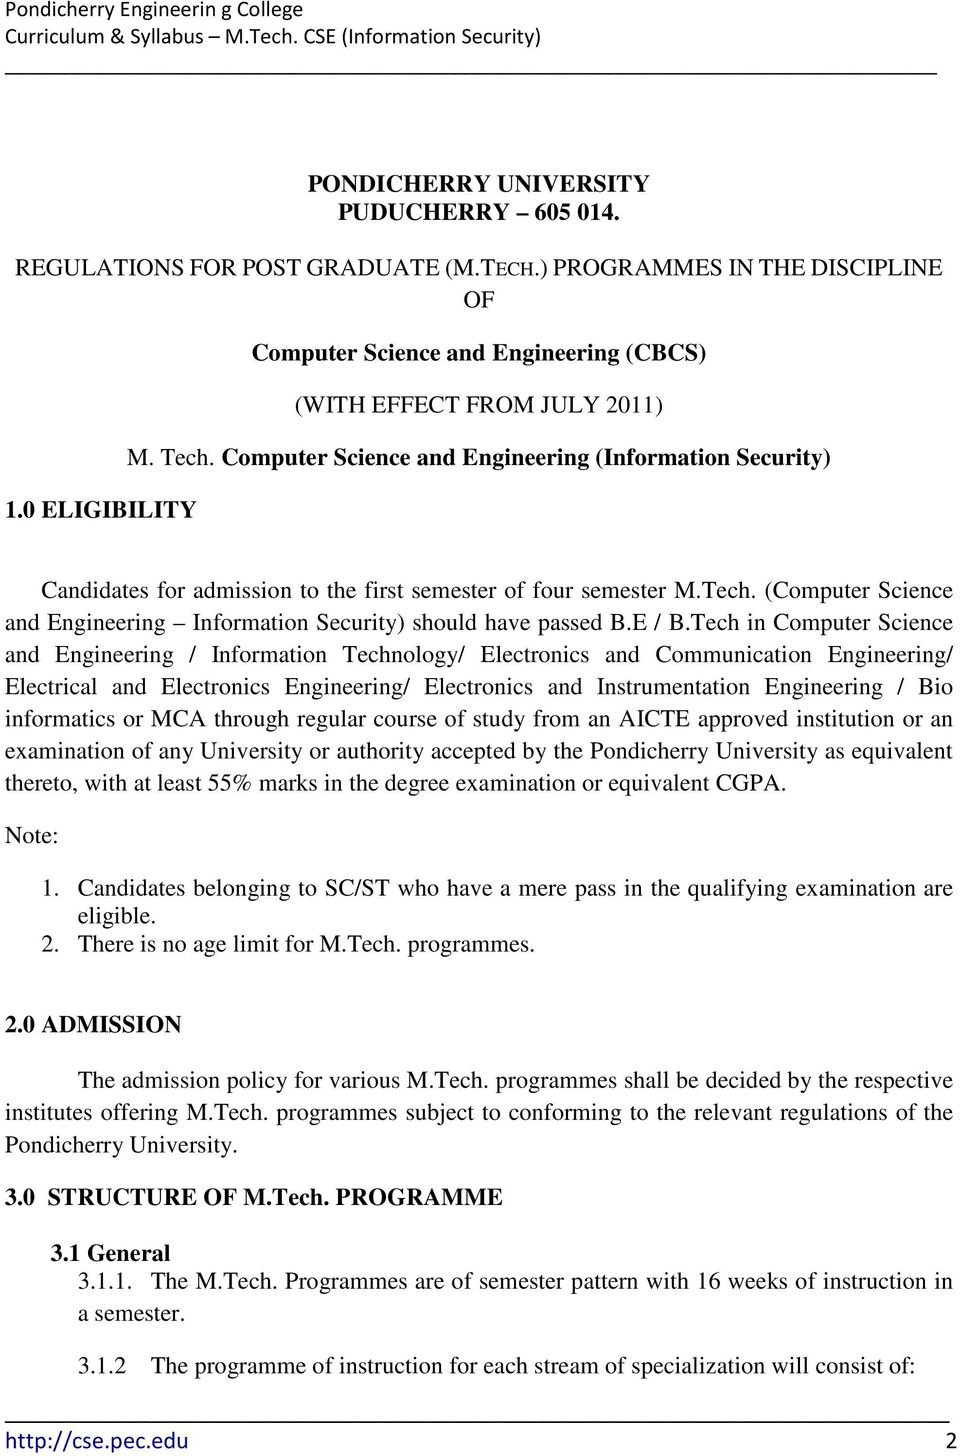 Computer Science and Engineering (Information Security) Candidates for admission to the first semester of four semester M.Tech.